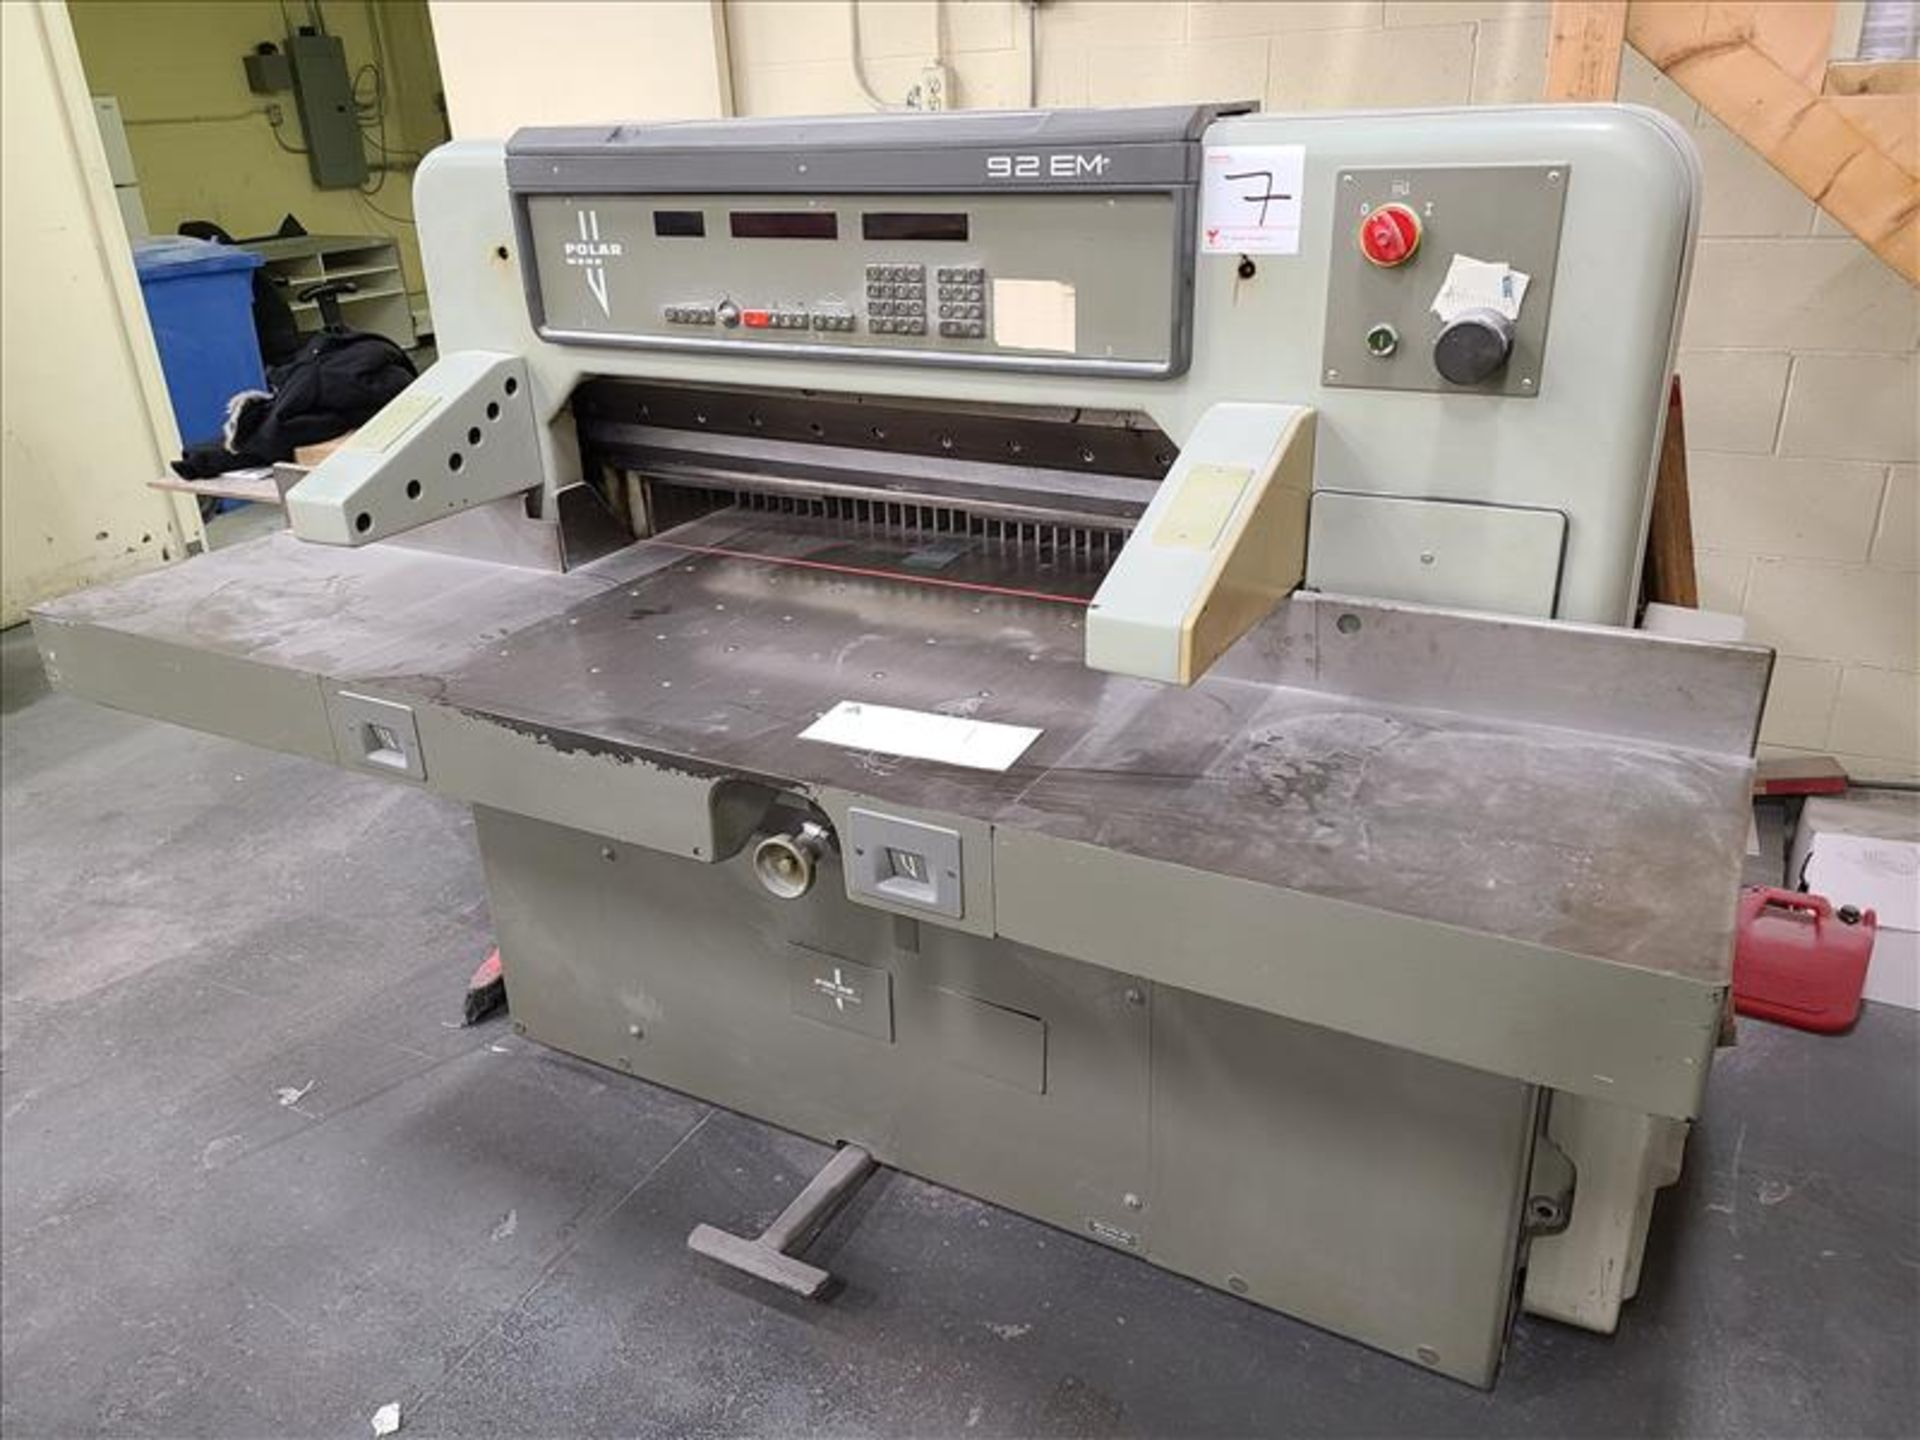 Polar Mohr Guillotine, model 92EM, S/N. 5611525, w/ 3' infeed, 220V, 19.5 amps, 3 Phase